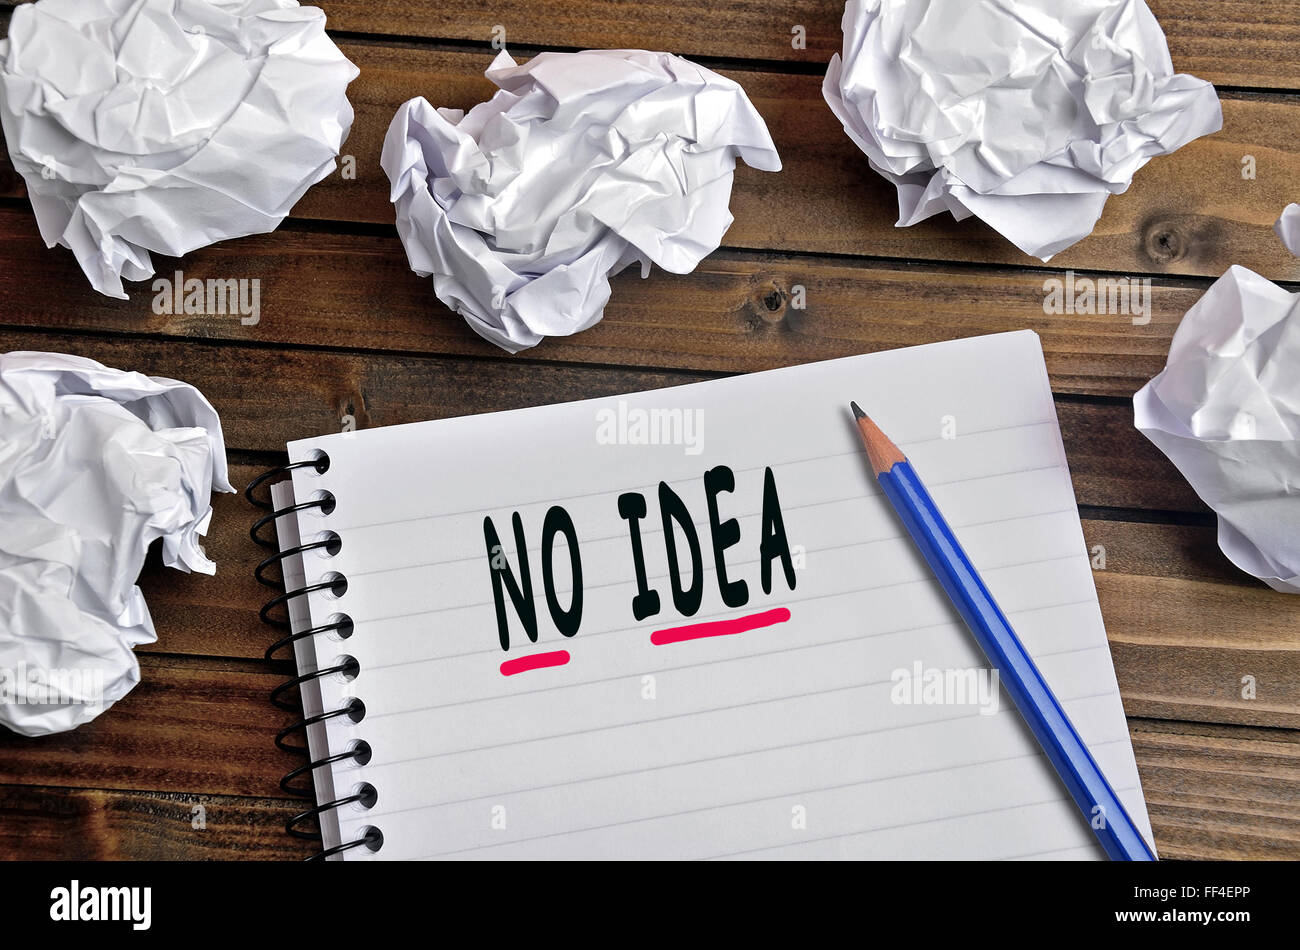 No idea words on notebook - Stock Image